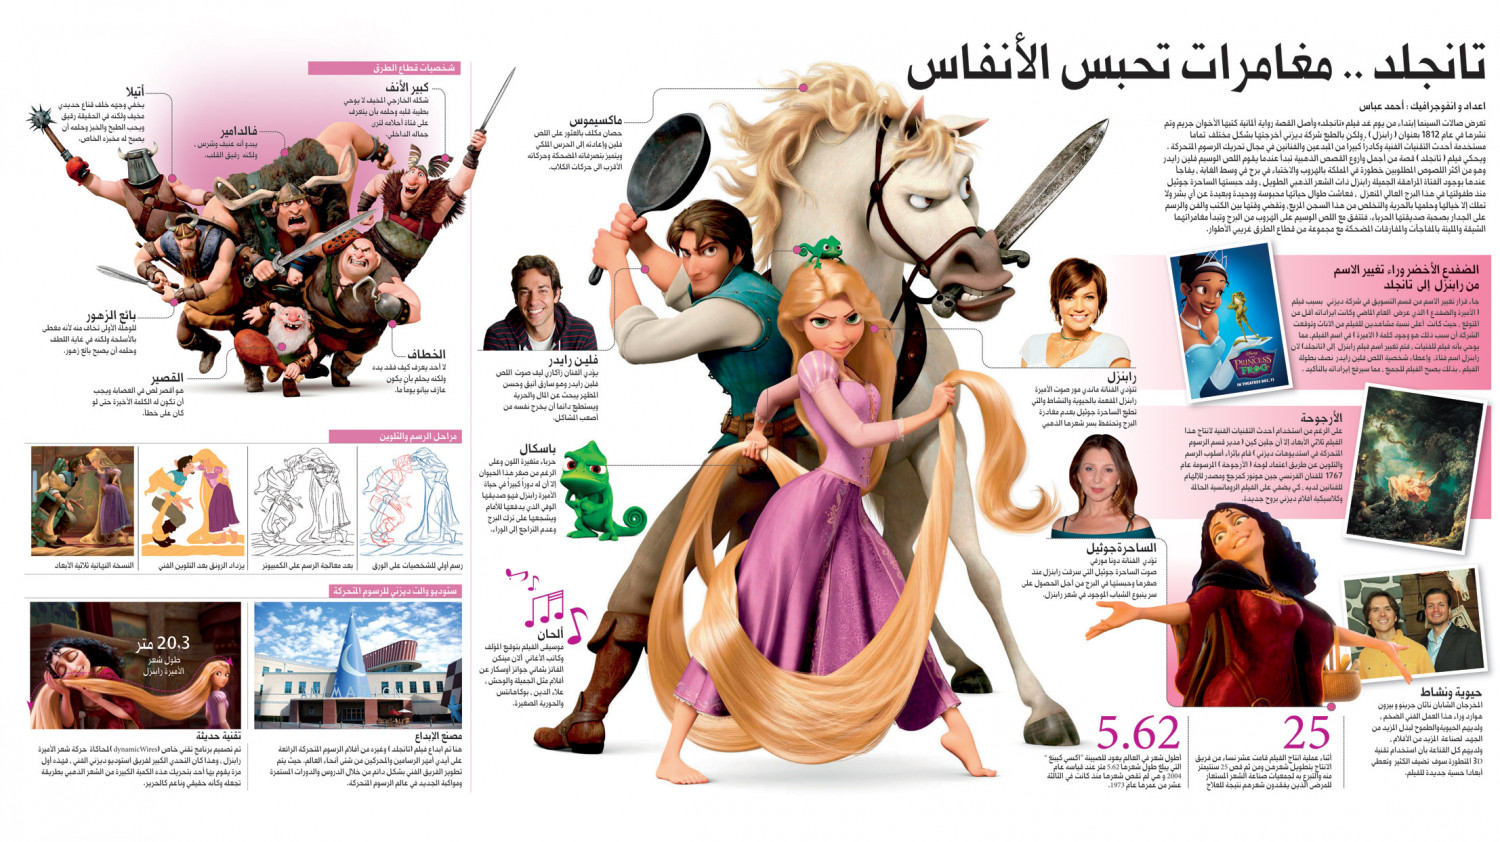 Tangled: The Movie Infographic